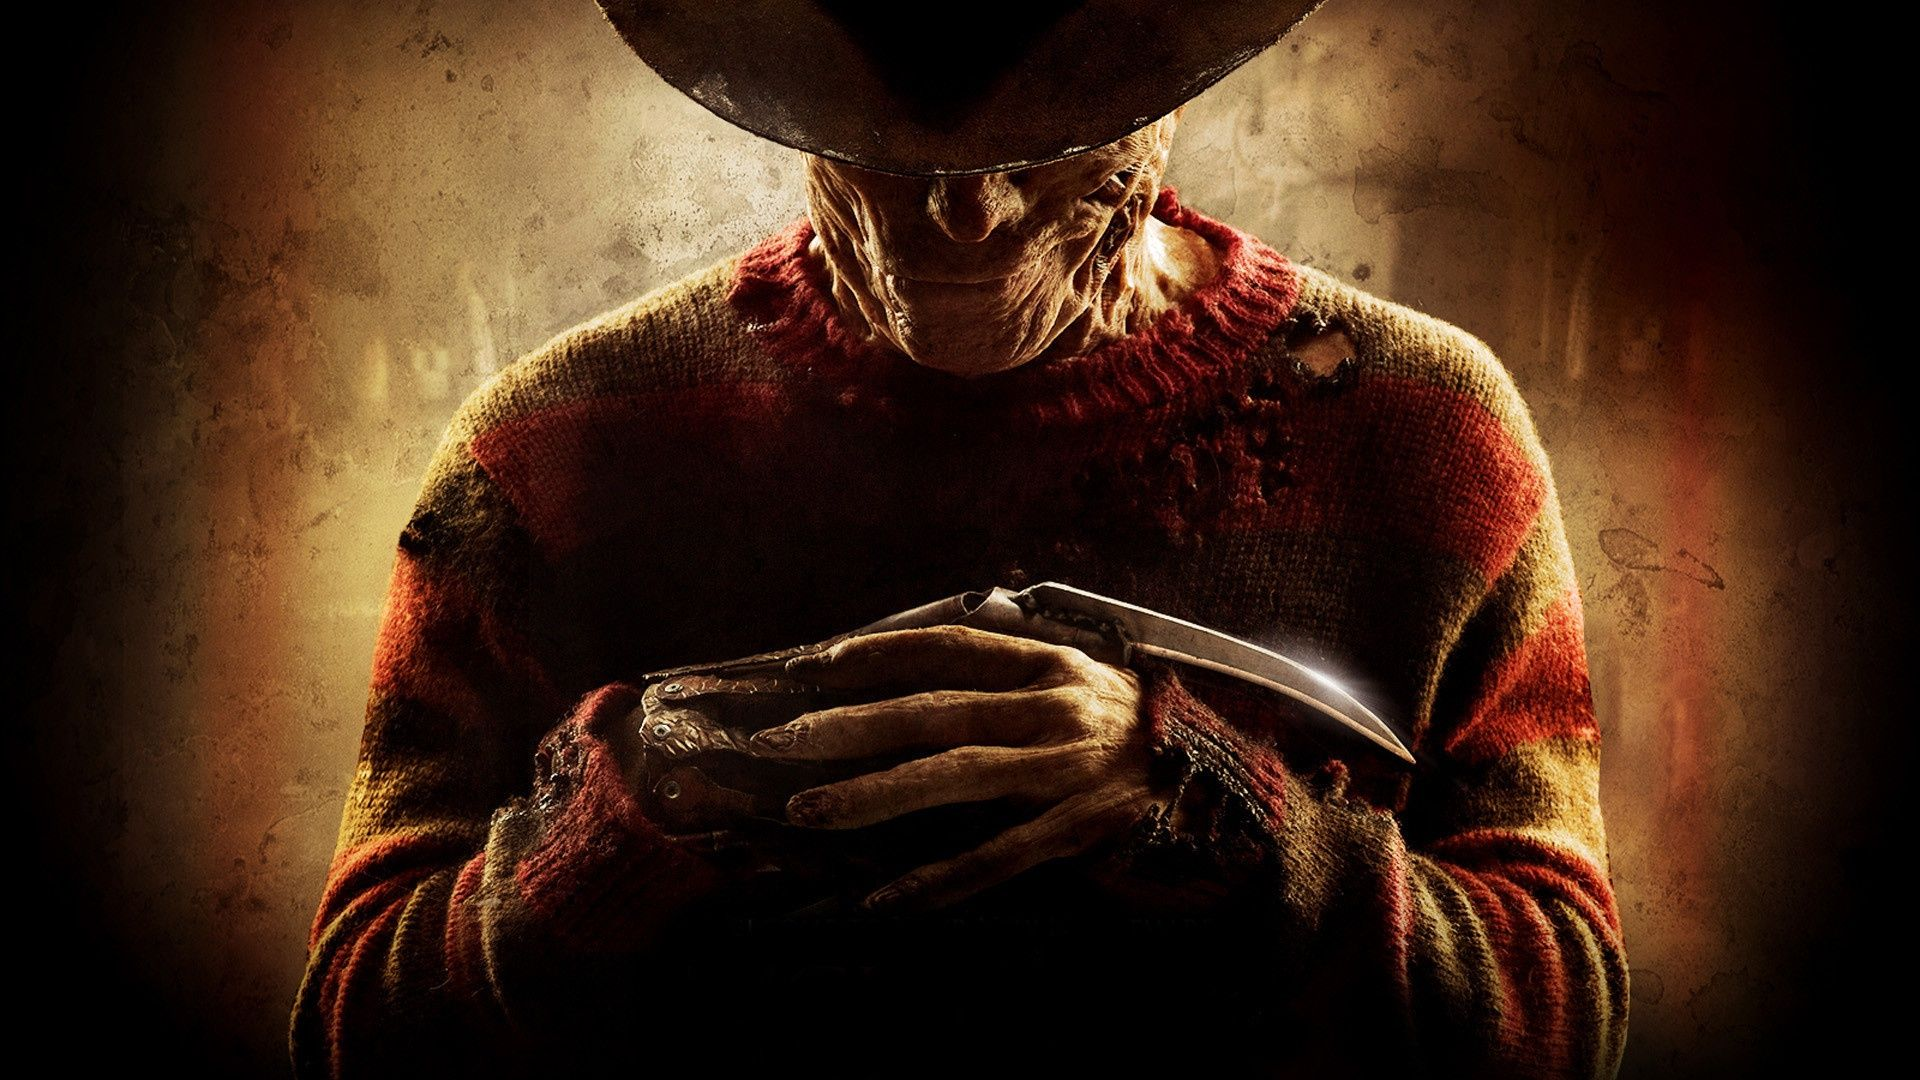 a-nightmare-on-elm-street-1920×1080-wallpaper-wpc5801919